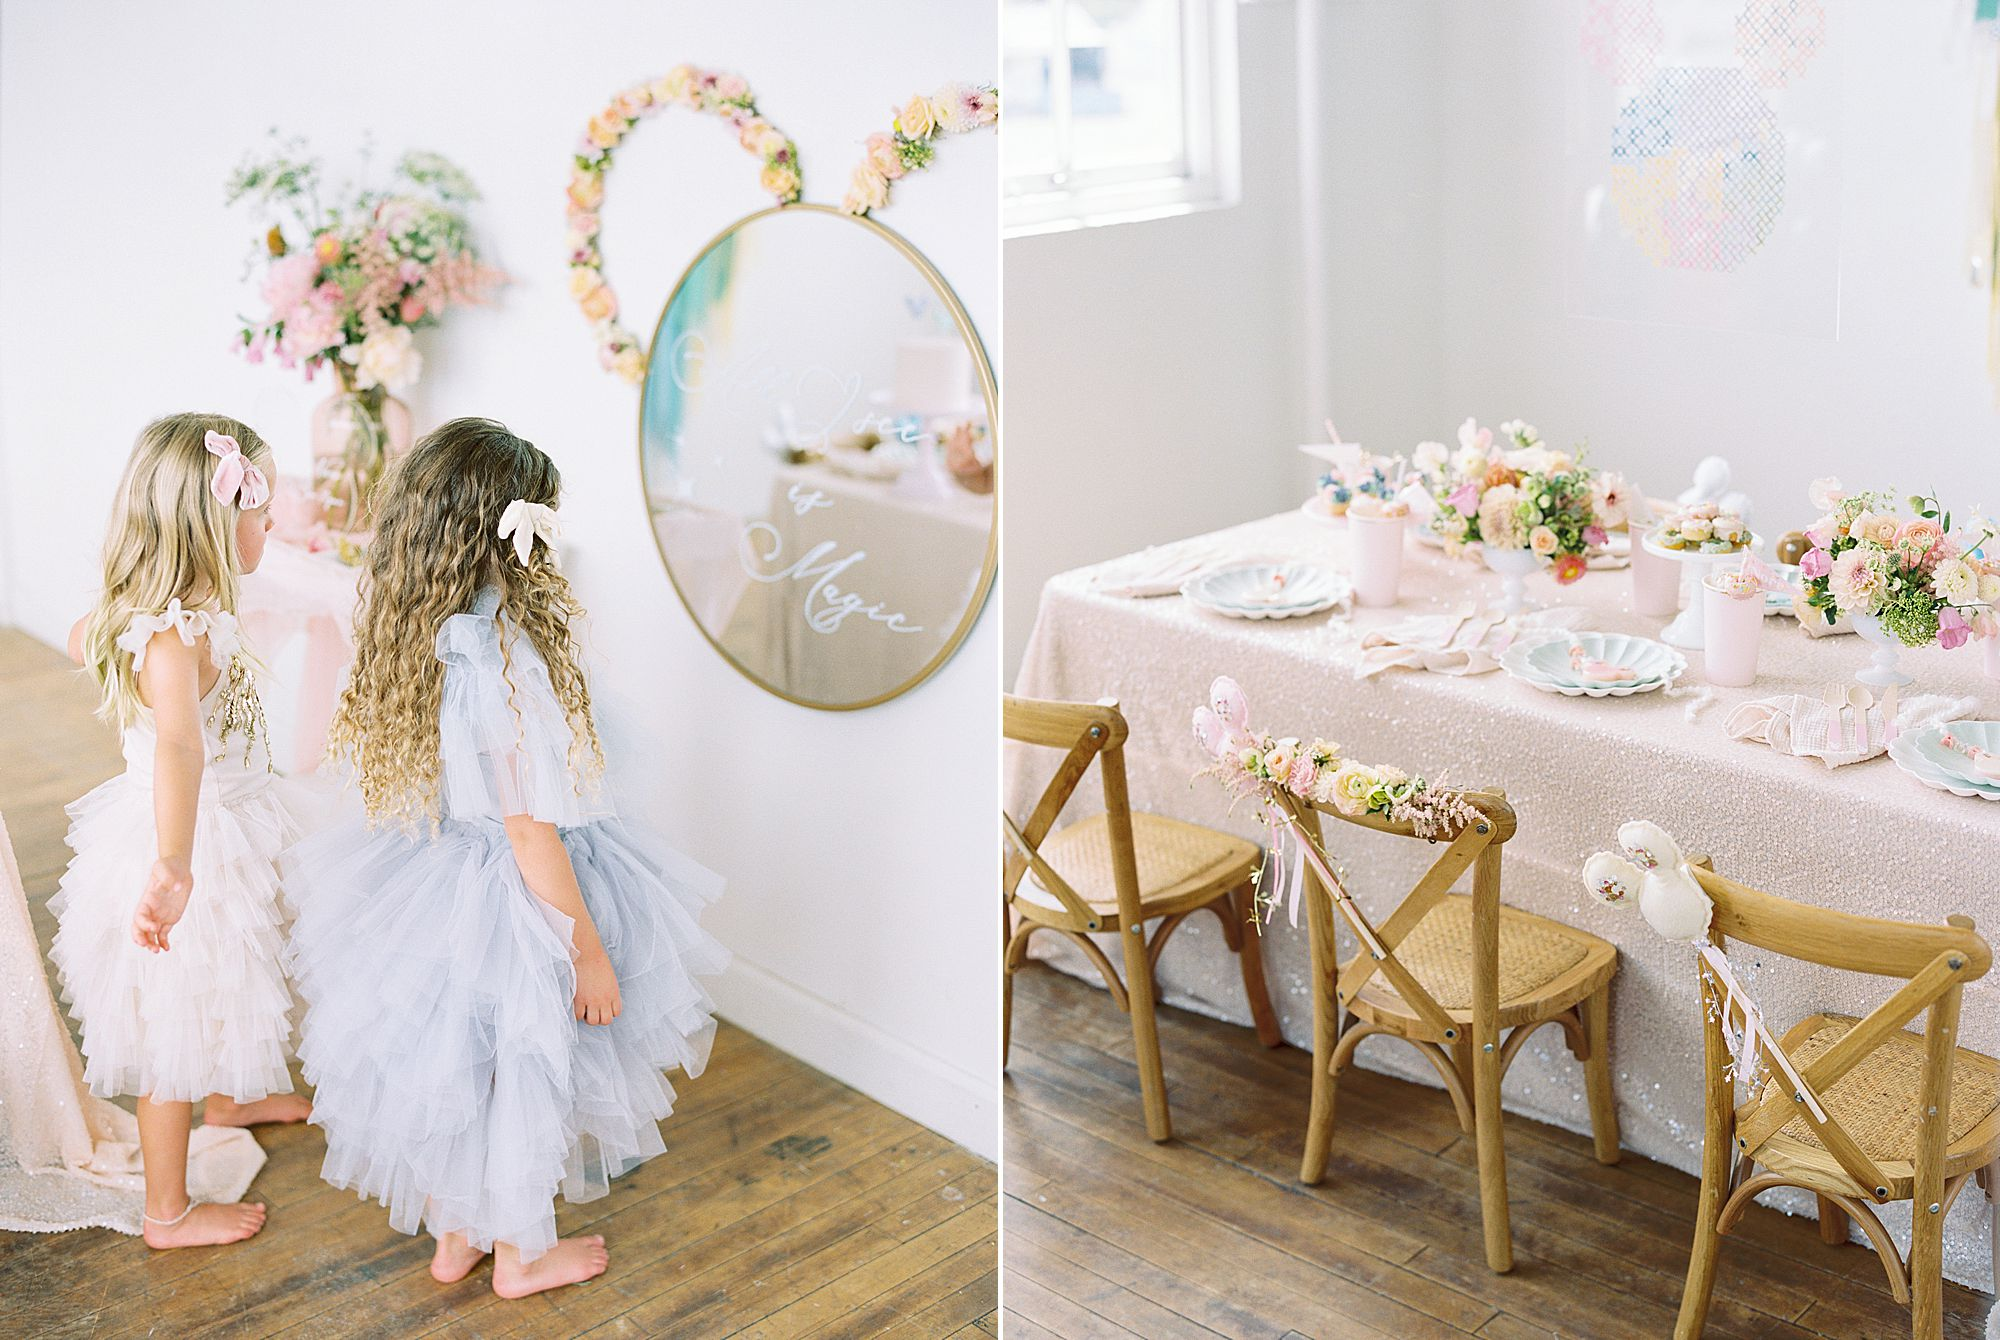 Vintage Disney Birthday Party for Princess Nora's Fourth Birthday - Featured on 100 Layer Cake - Ashley Baumgartner - Parker Grace Events_0020.jpg